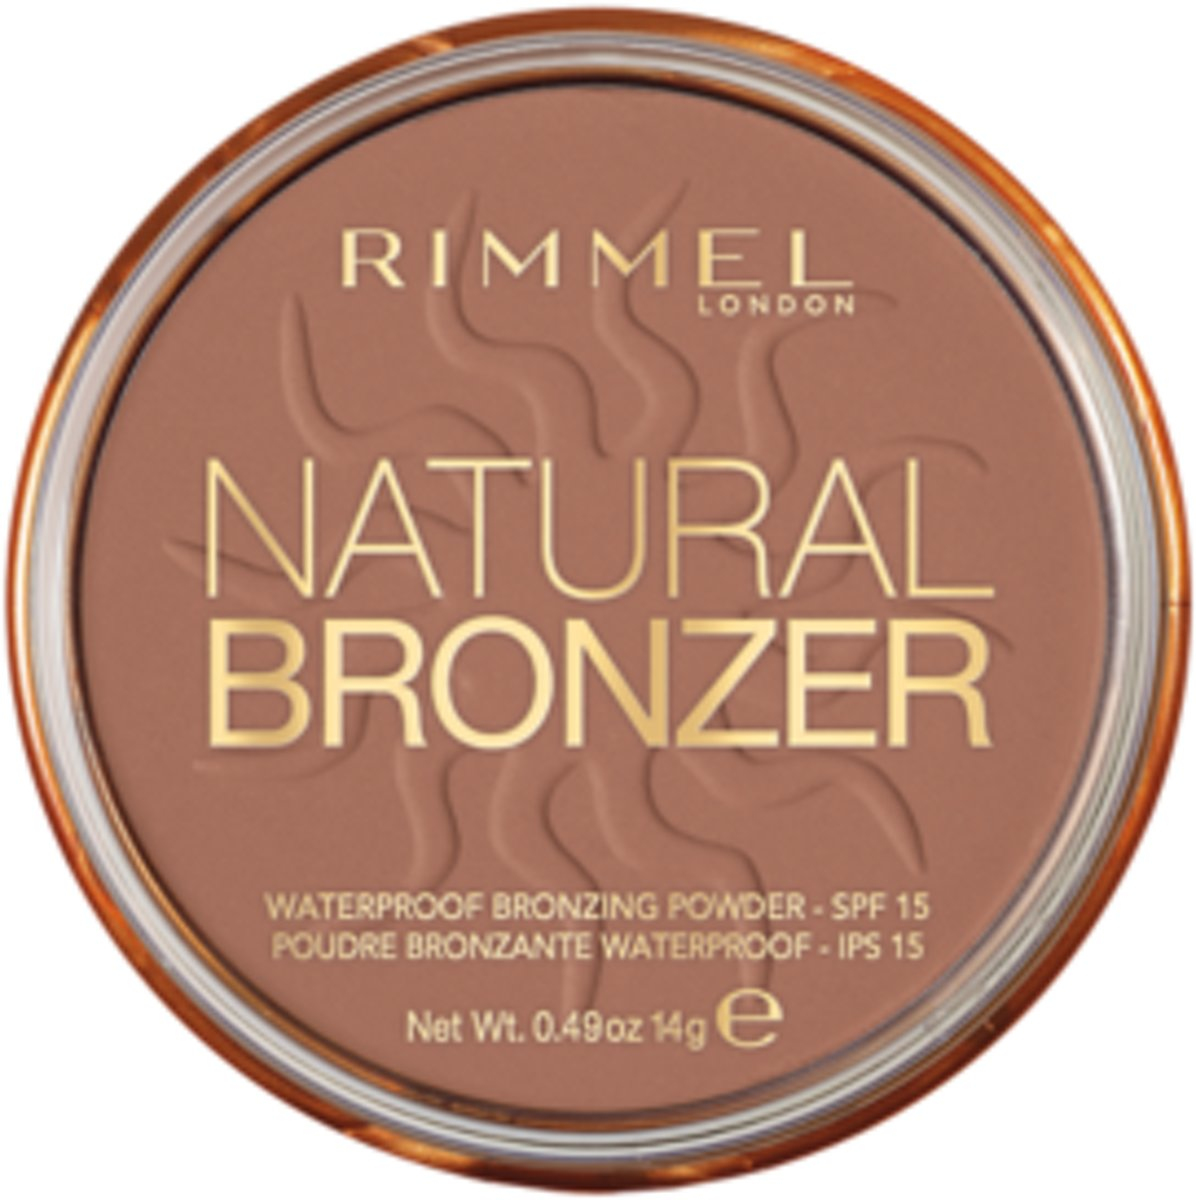 Rimmel London Natural Bronzing - 026 Sun Kissed - Bronzingpoeder